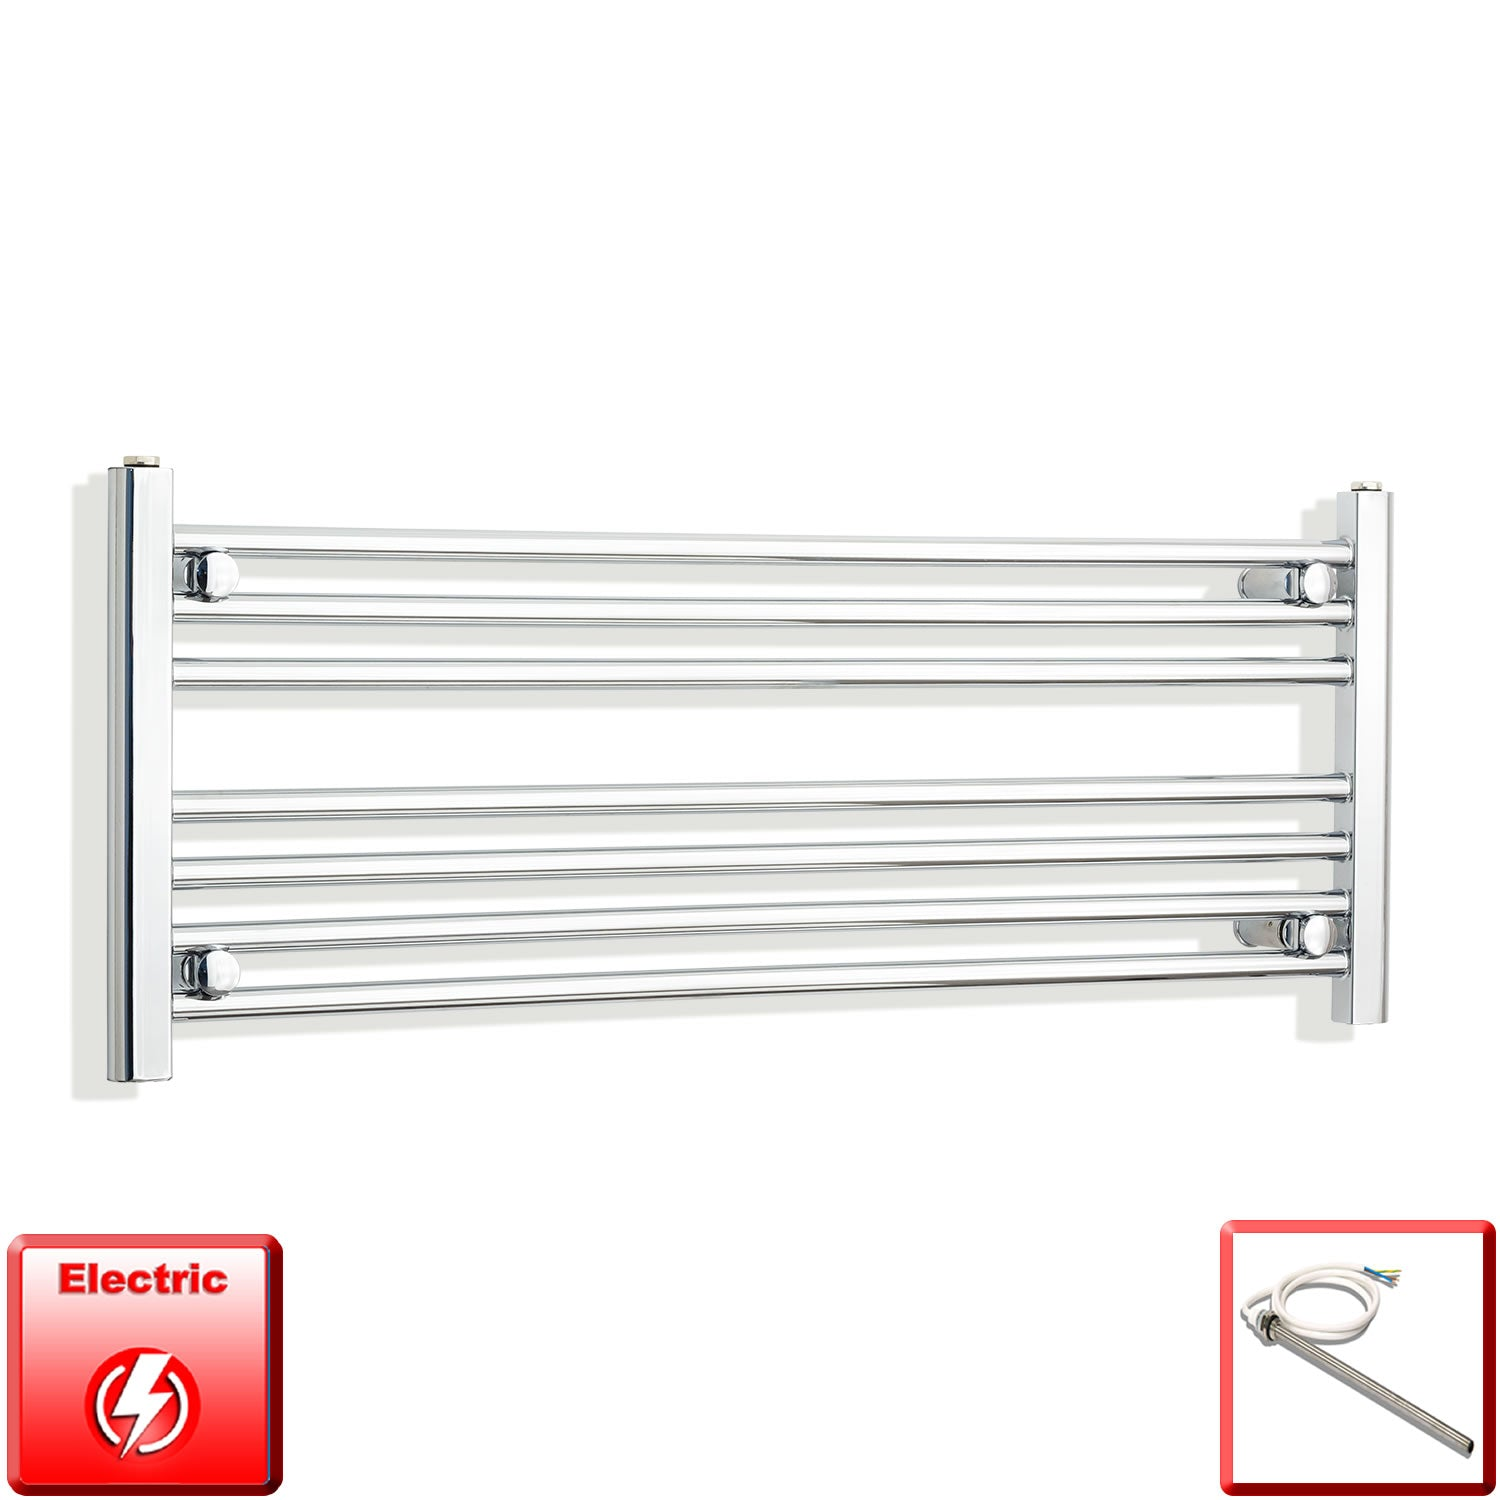 1300mm Wide 400mm High Pre-Filled Chrome Electric Towel Rail Radiator With Single Heat Element